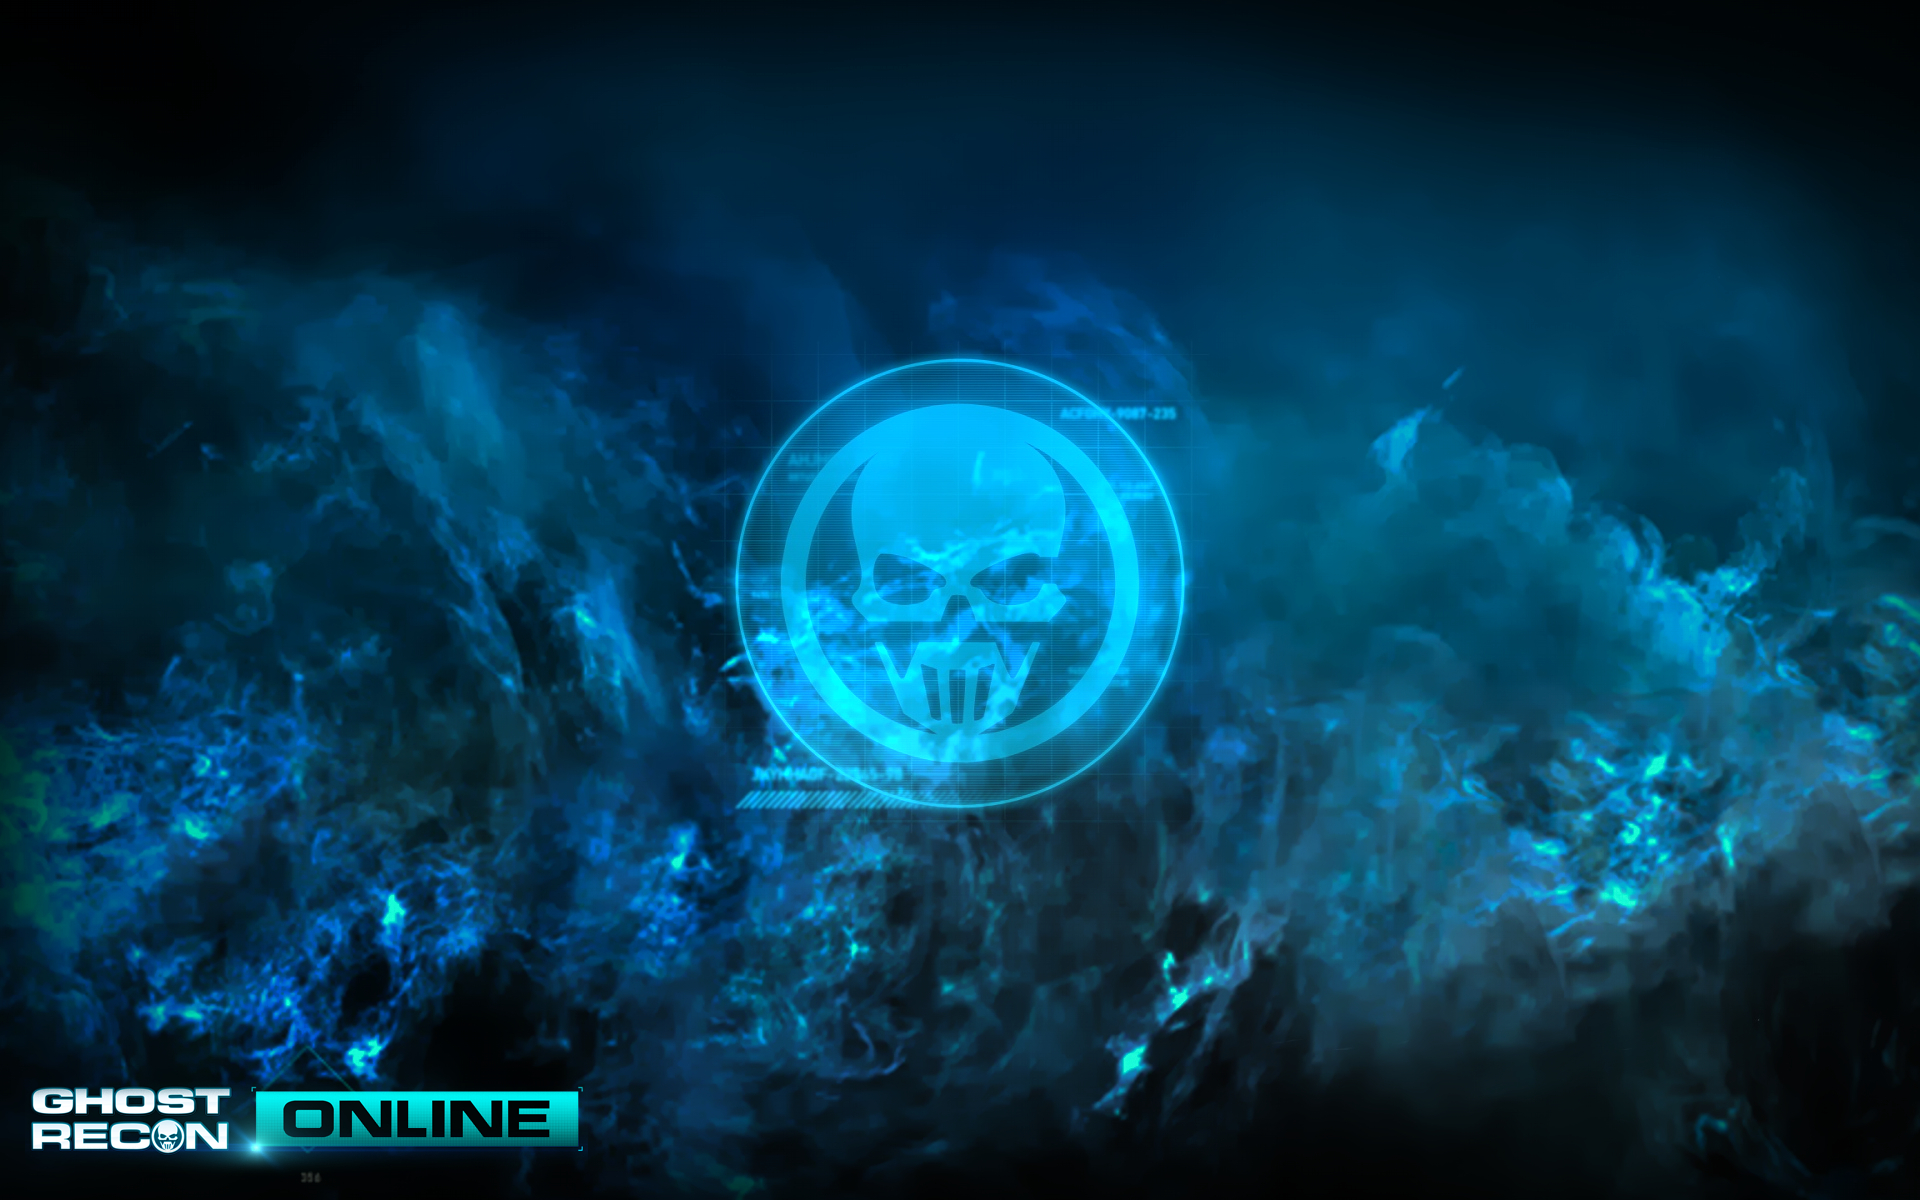 [OFF] Wallpapers Ghost Recon: Online por mi - Taringa!